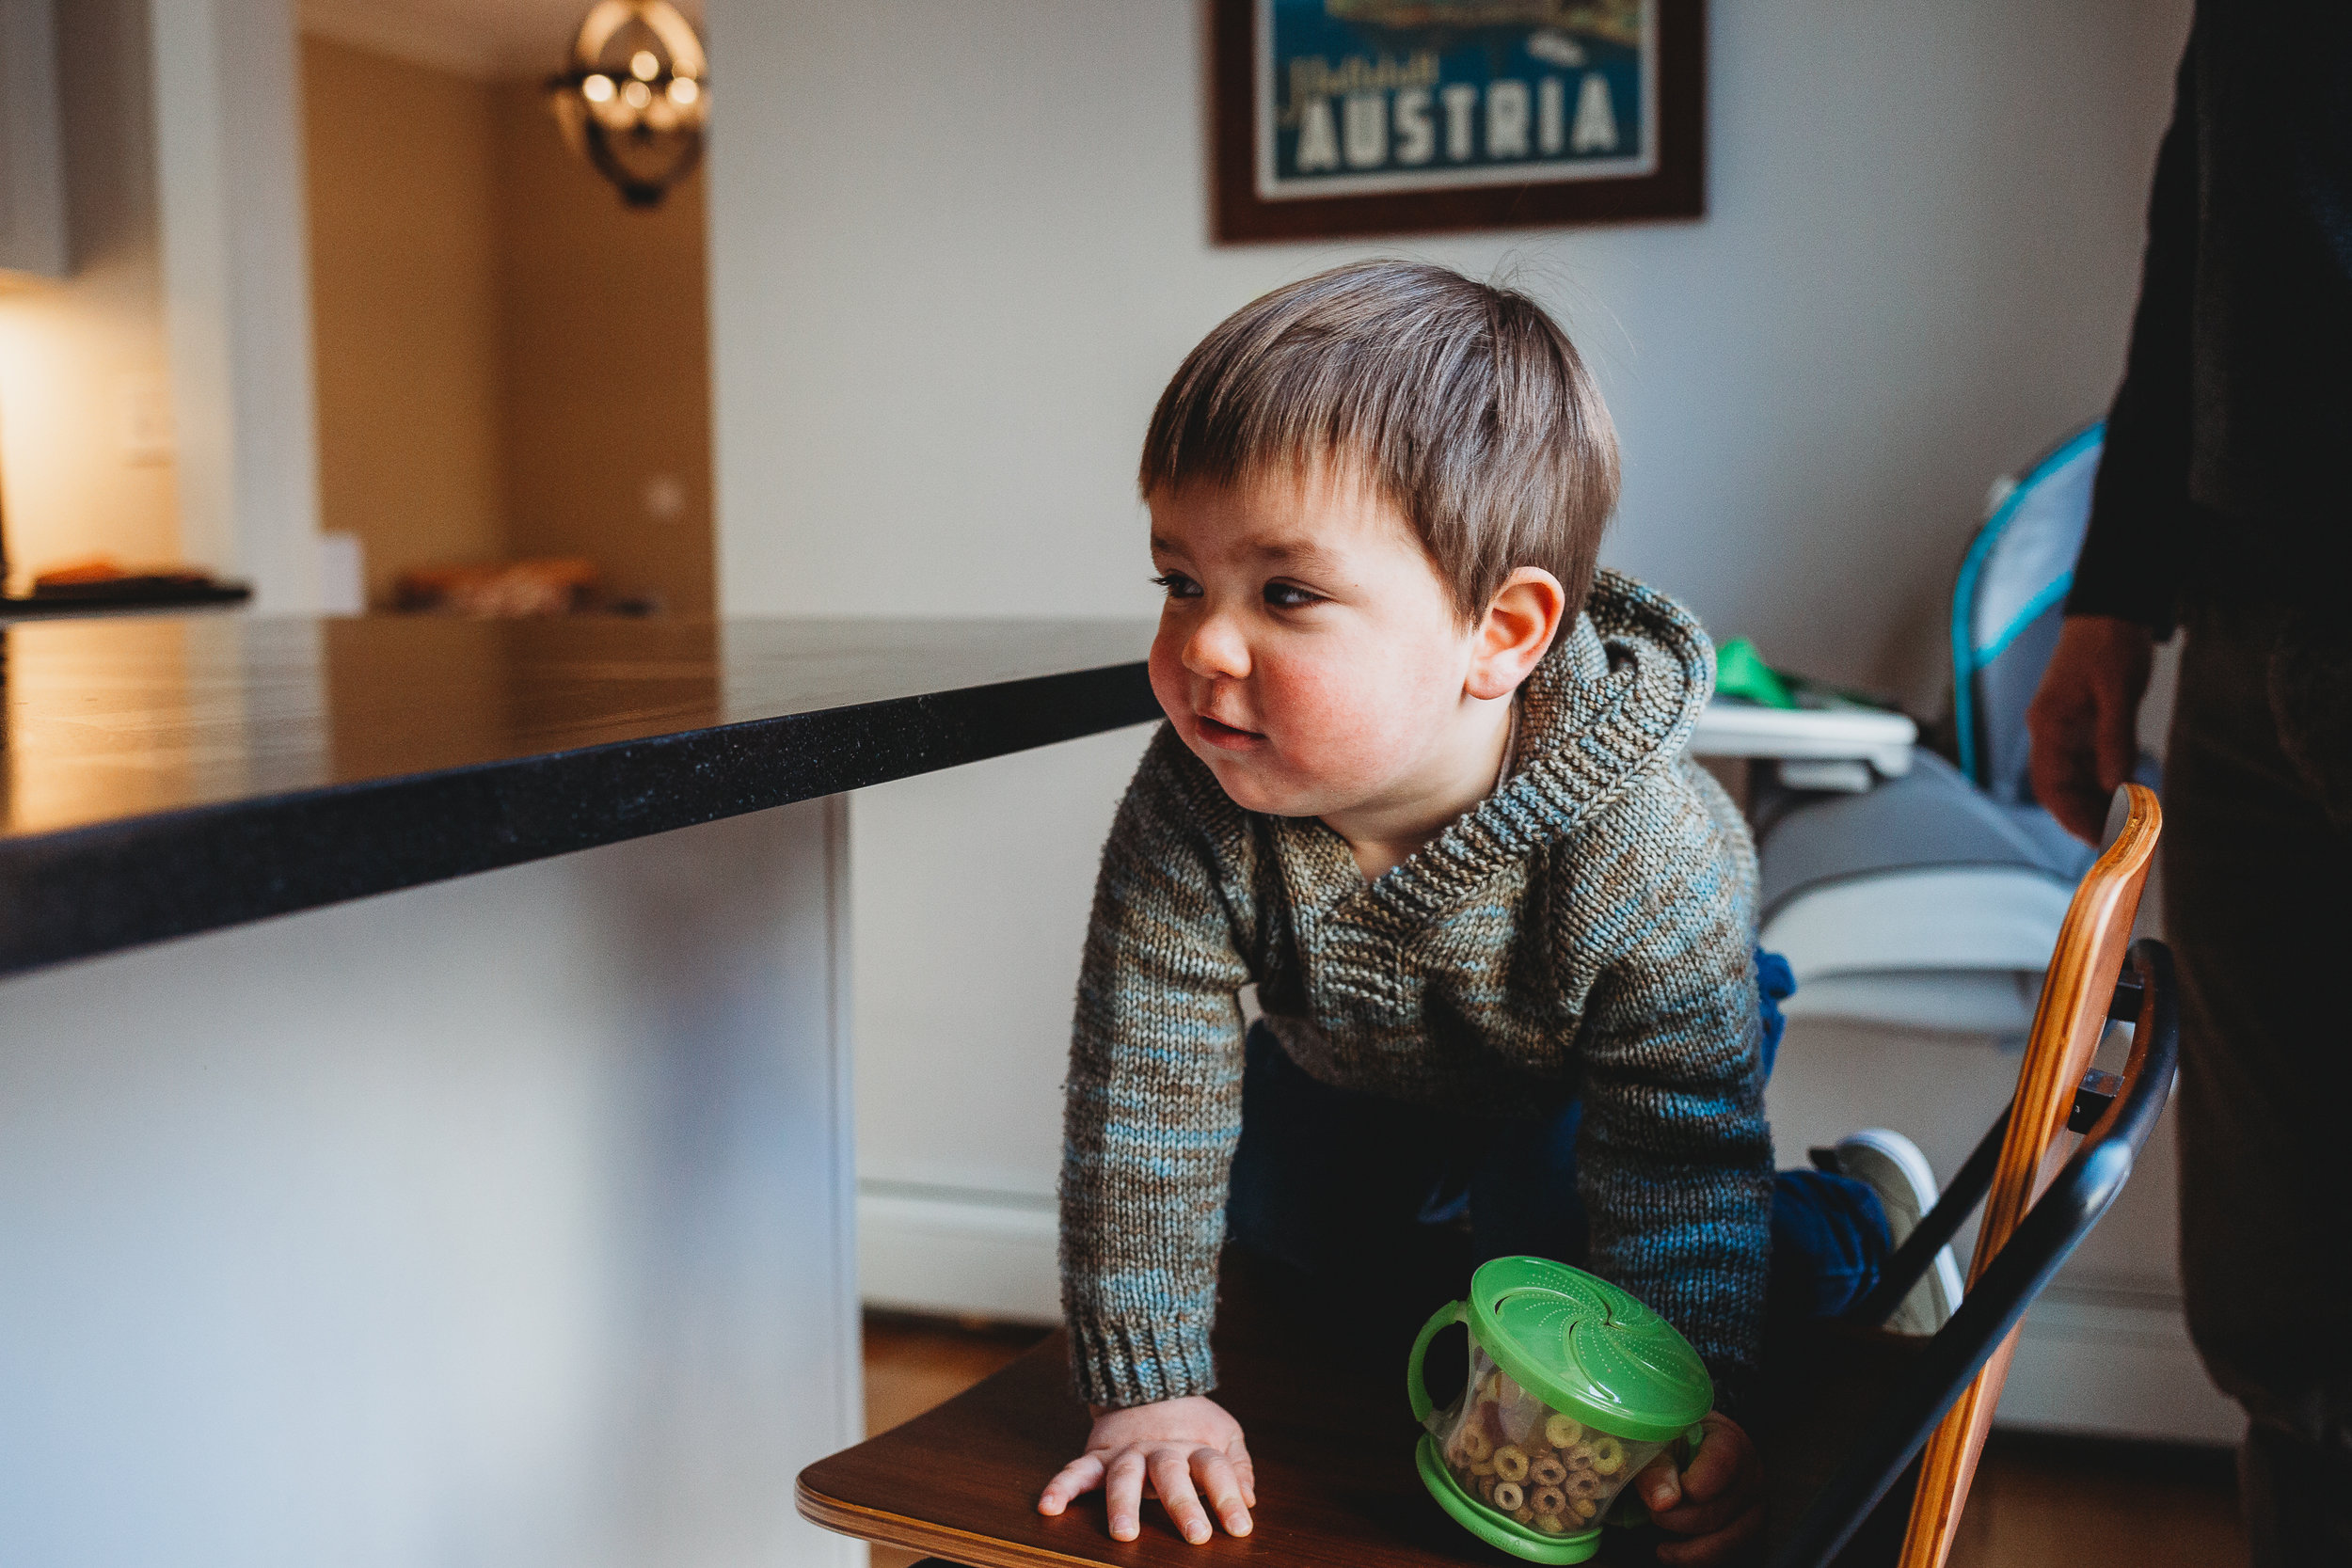 Toddler boy grabbing a snack during in-home lifestyle session. Boston family photographer Joy LeDuc.